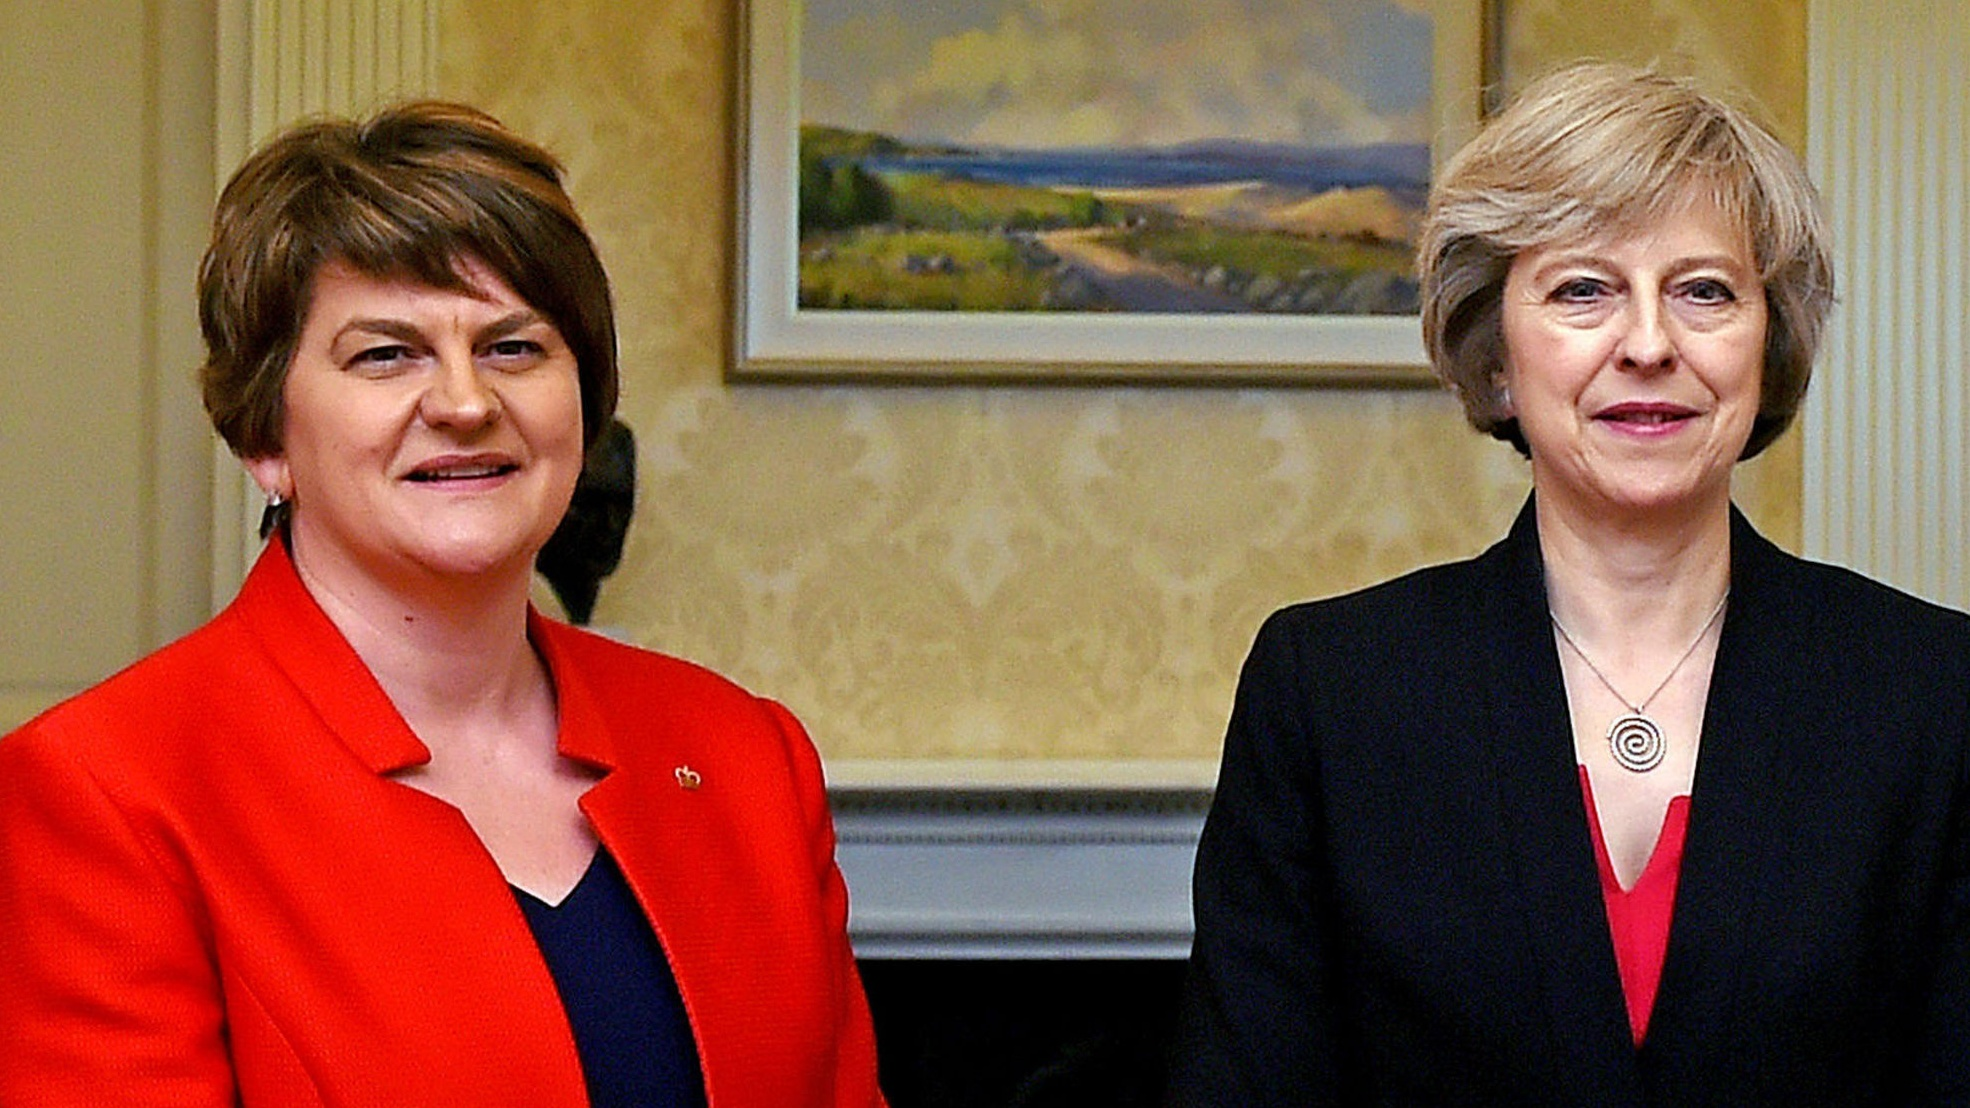 Britains' May to holds talks with DUP to secure deal